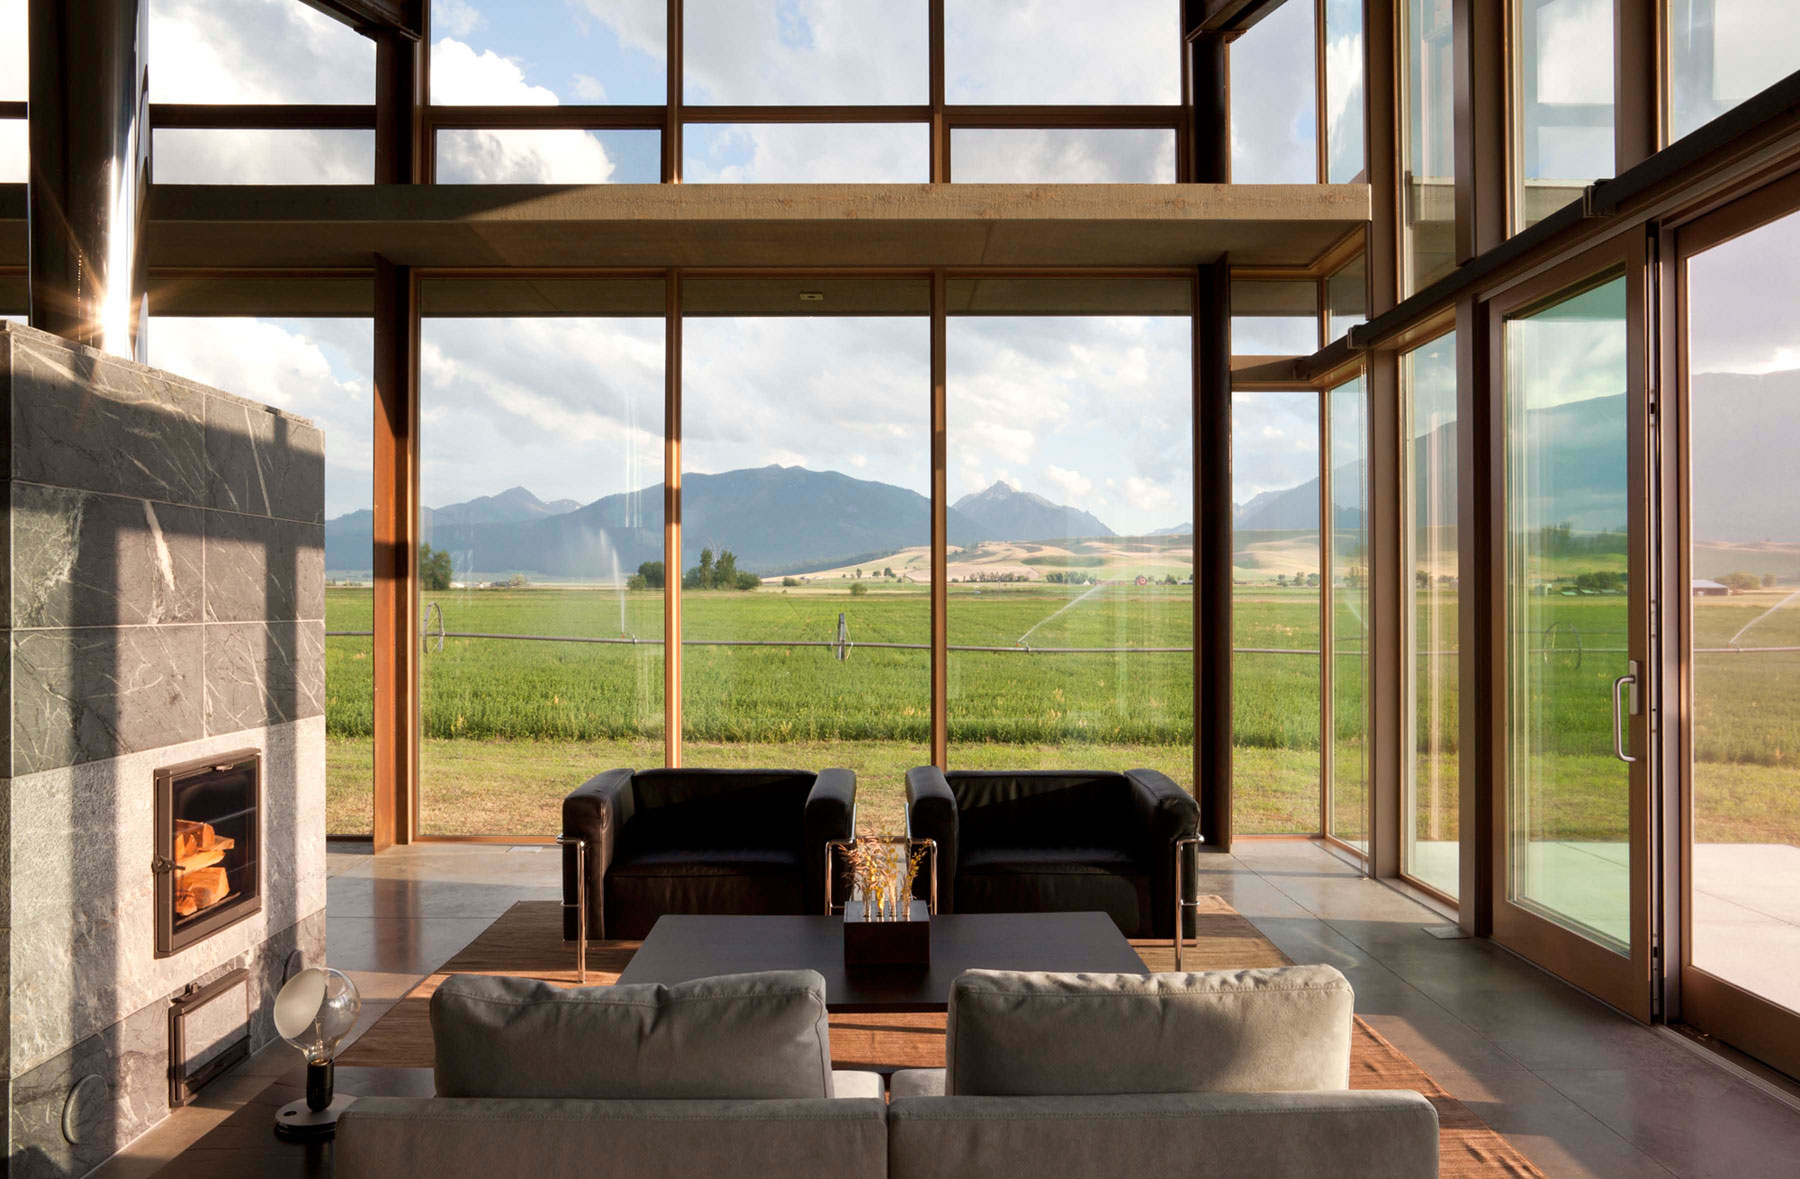 Fireplace, Seating, Rug, Living Space, Glass Walls, Glass Farmhouse in Northeast Oregon